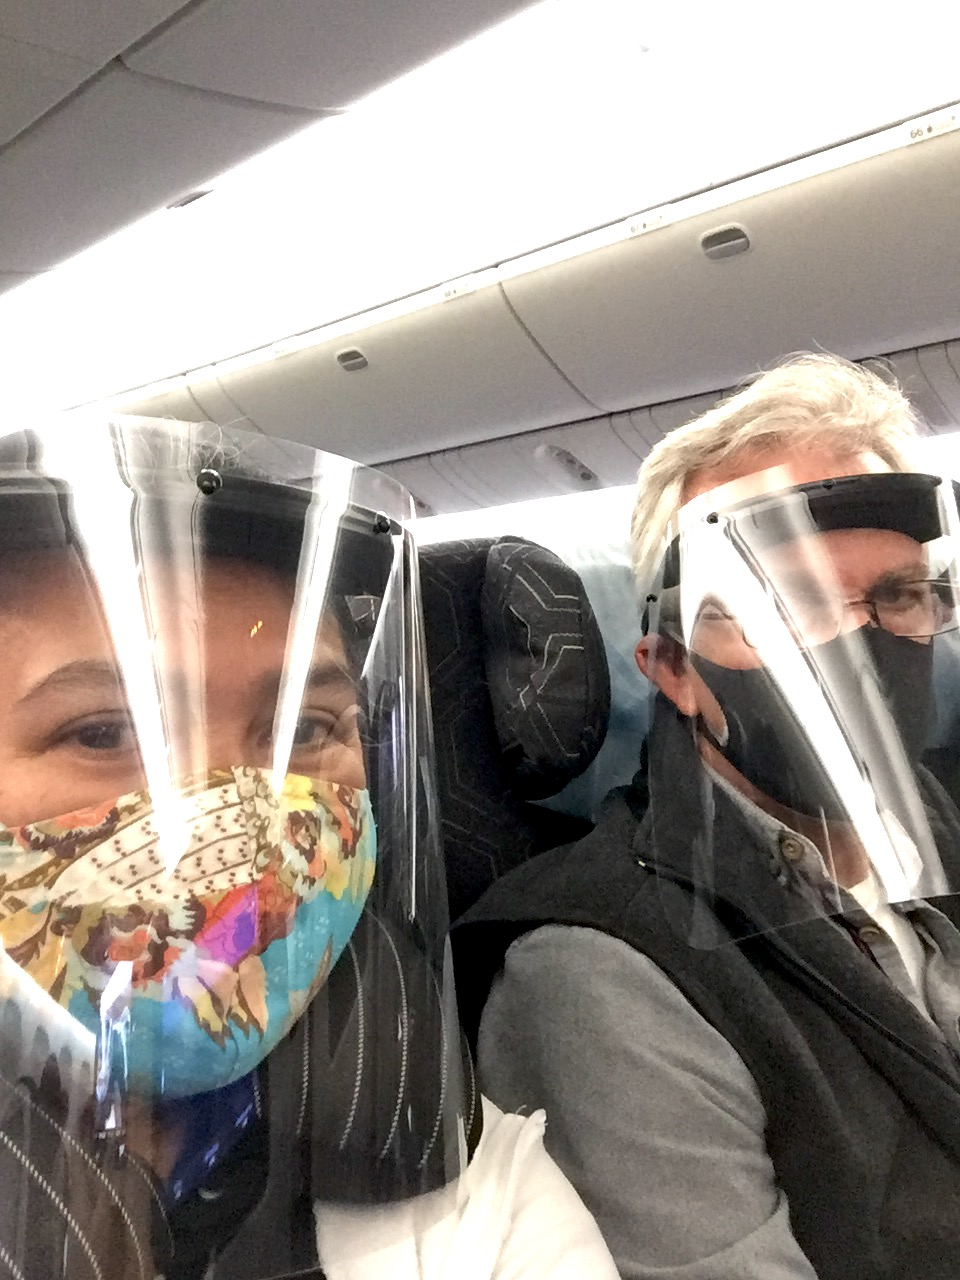 Dessa and Cobbie Palm traveling with double mask and face shield